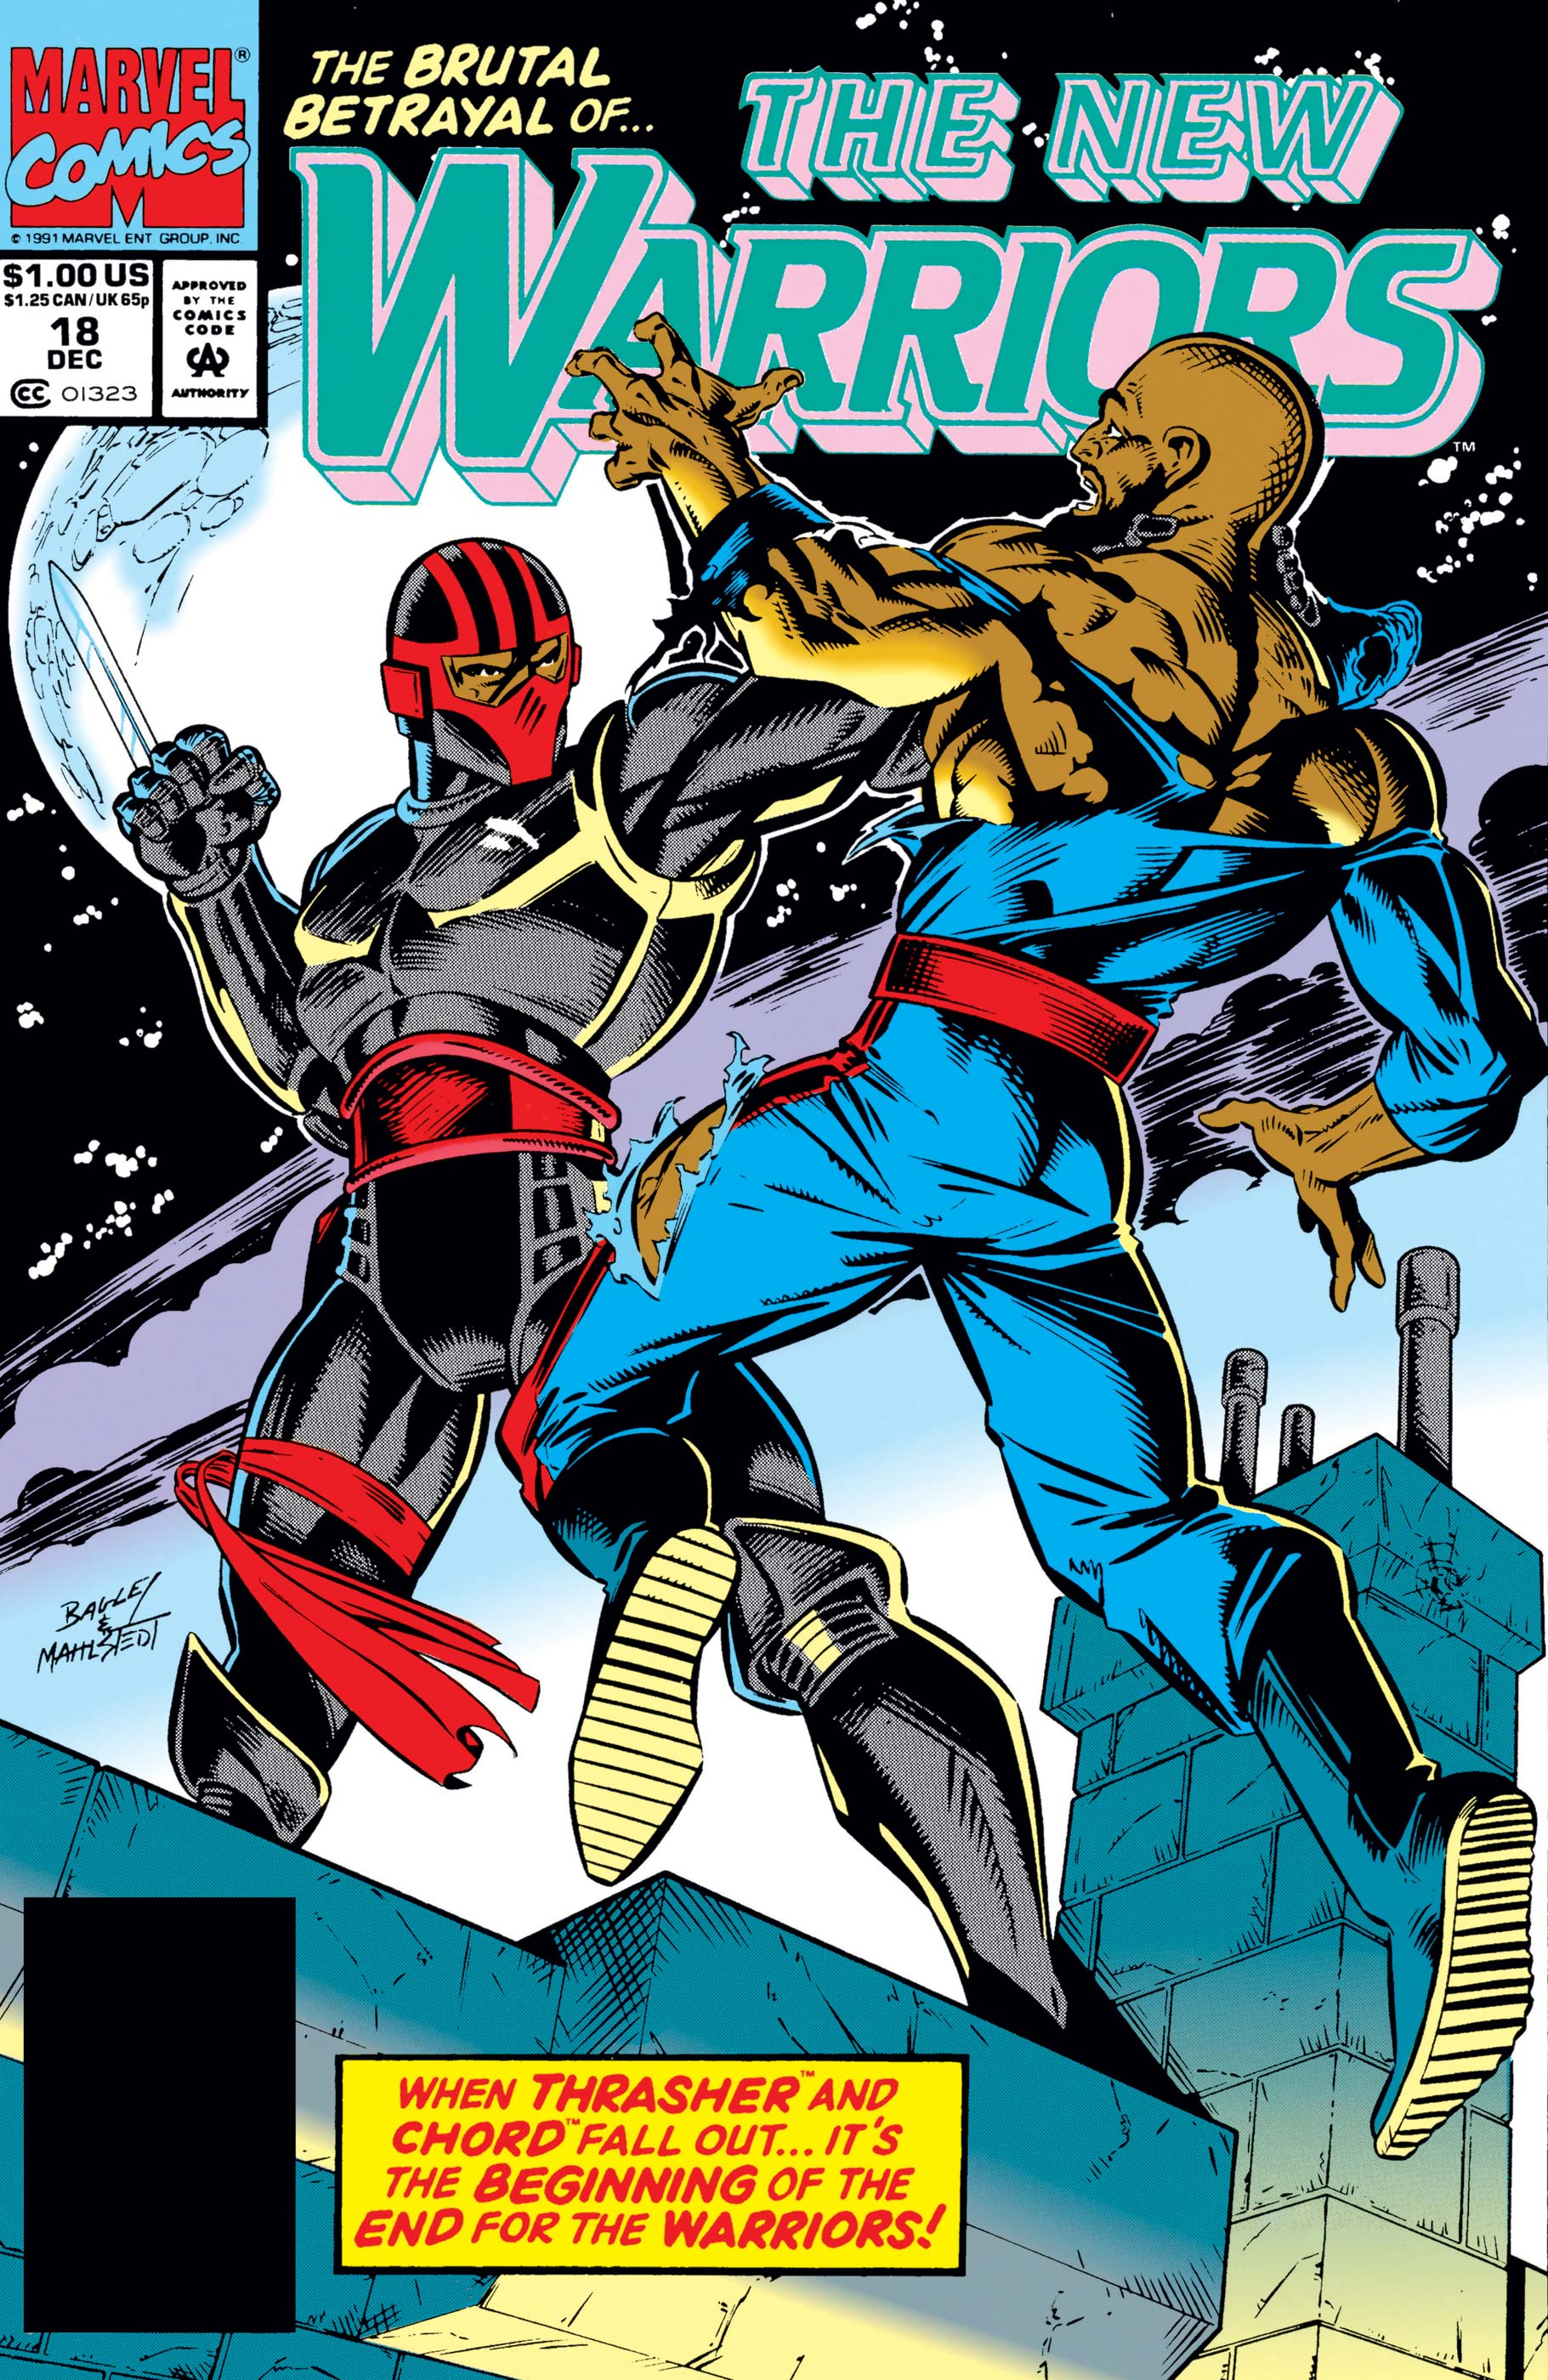 New Warriors (1990) #18